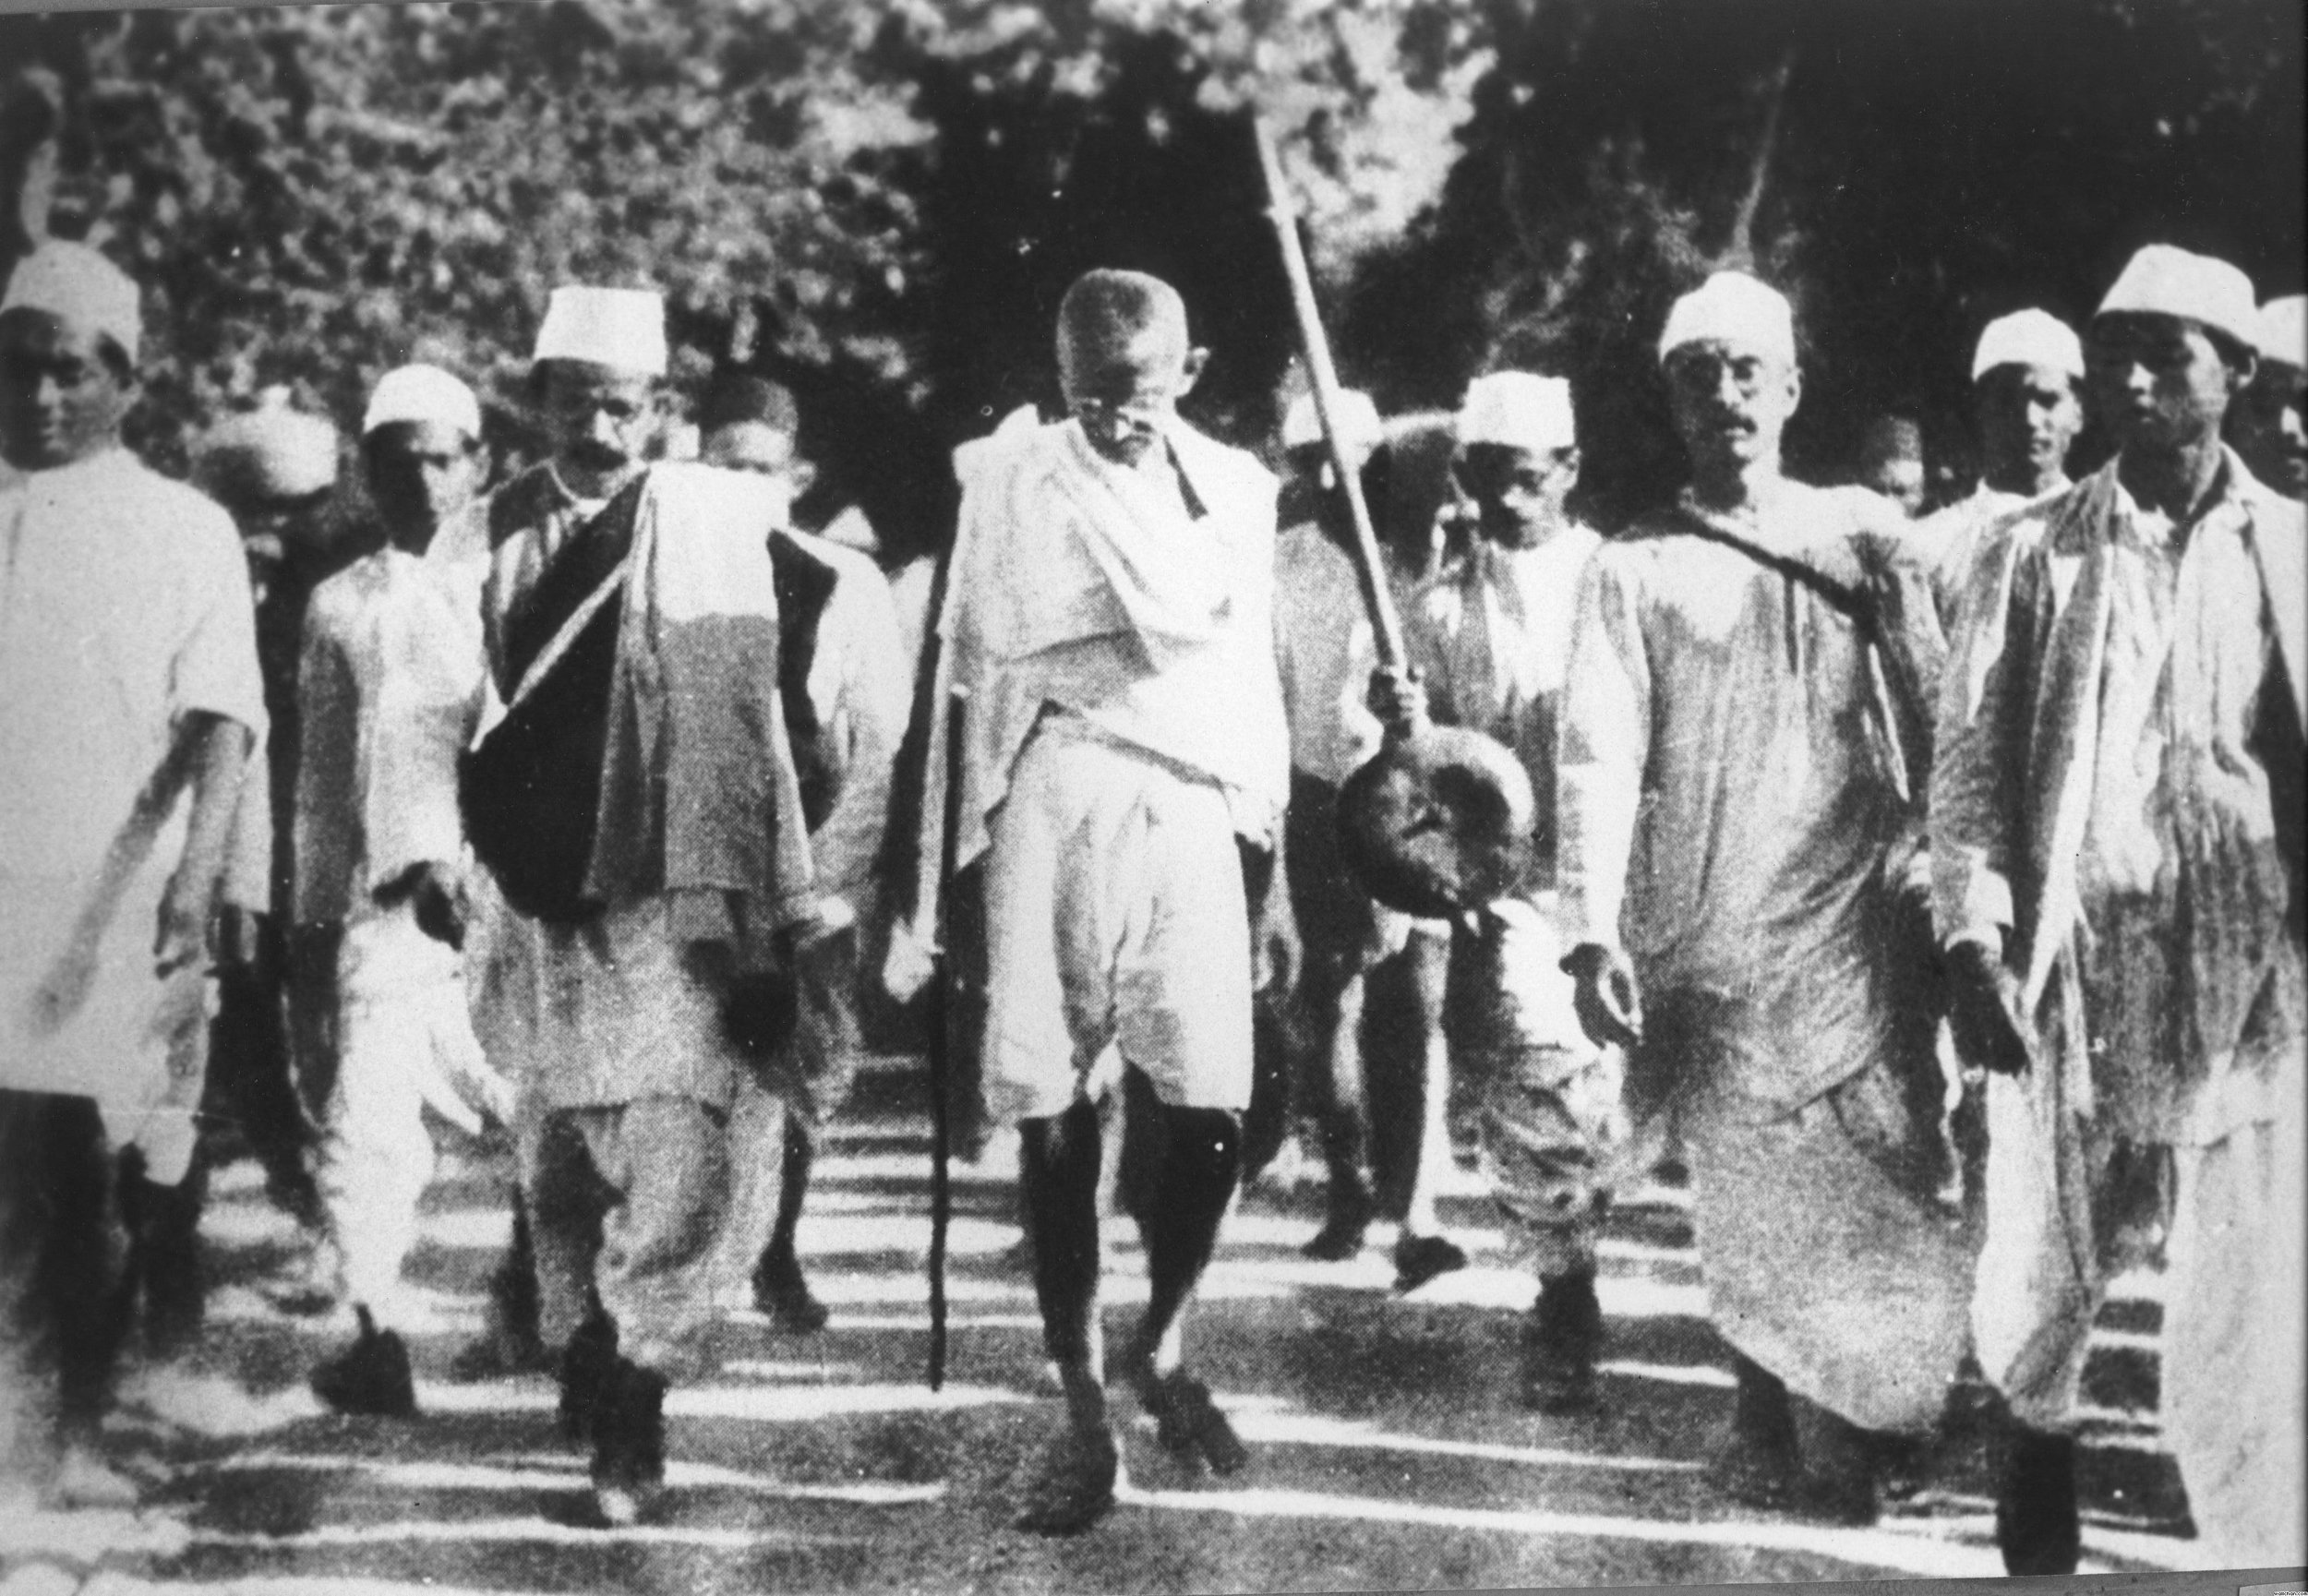 If one looks carefully and critically enough, one can find many sources of inspiration from collective actions that led to transformation throughout history. A brilliant example is when nearly 400 million Indians threw off the oppression of British colonial rule through nonviolent political strategies under the leadership of Mahatma Gandhi and others. Source: Wikipedia.